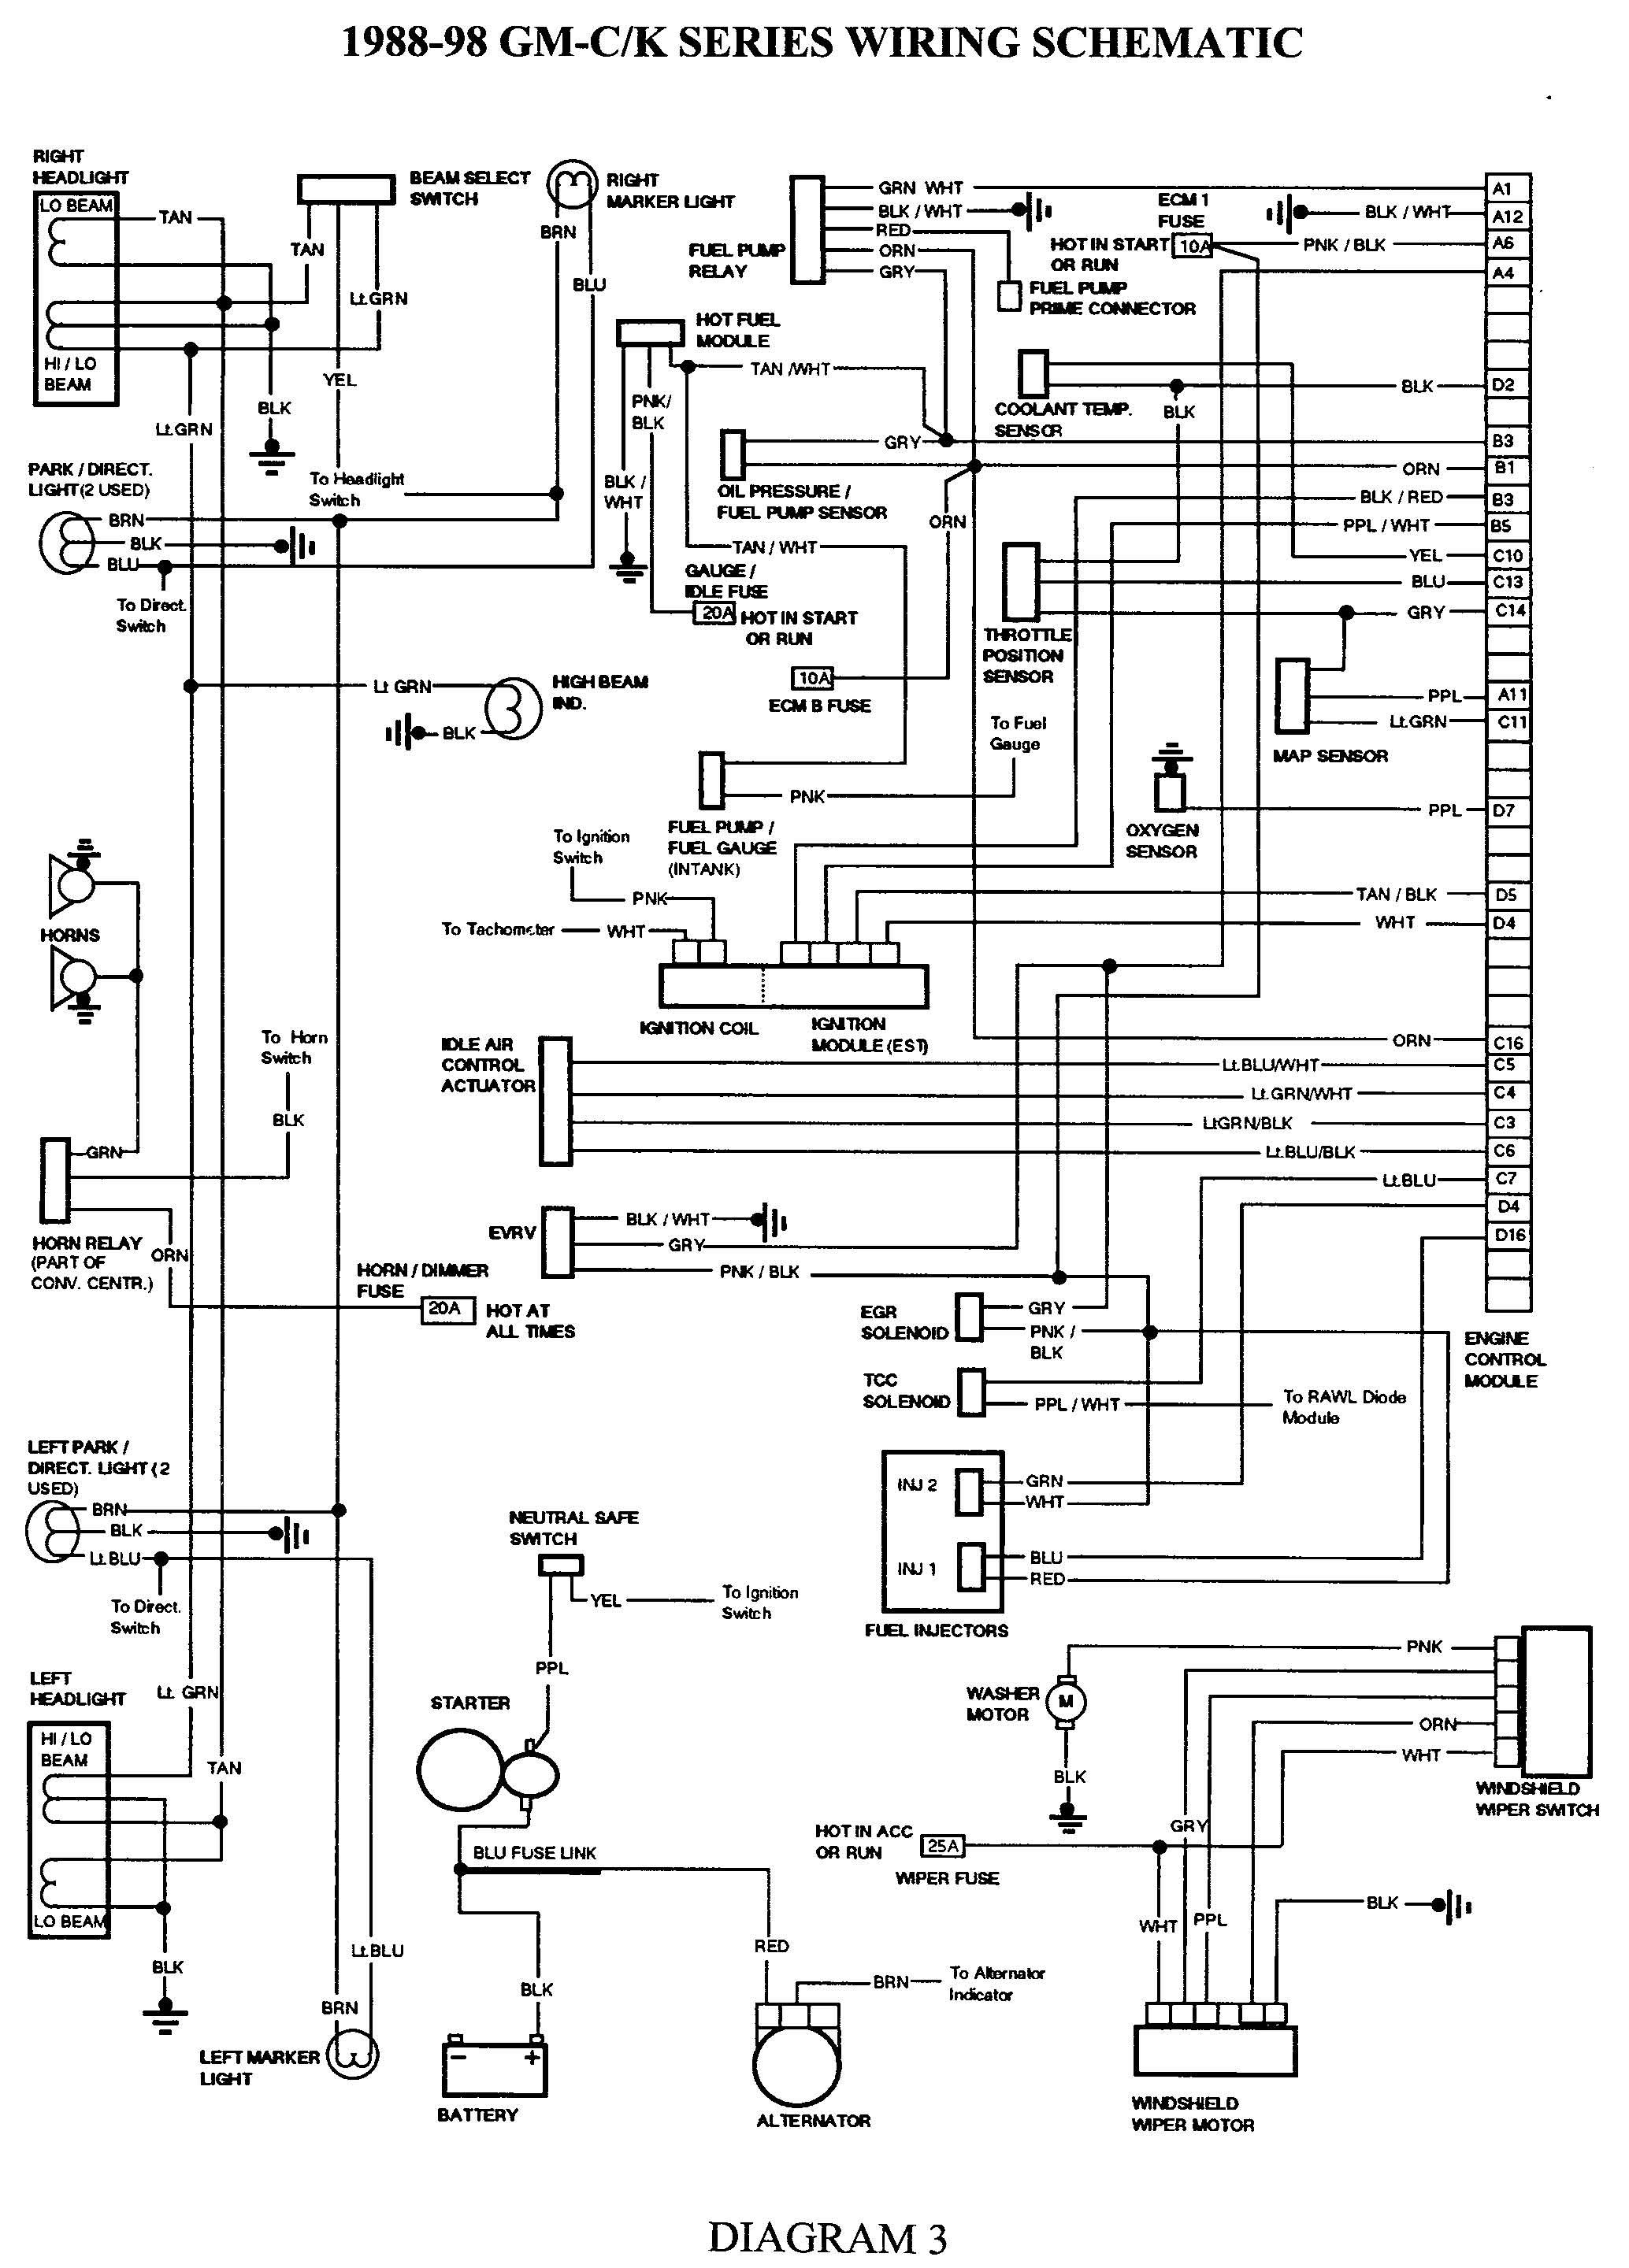 b2f2e5dbdc07dada83ef514f6d4ce3d4 gmc truck wiring diagrams on gm wiring harness diagram 88 98 kc 1967 gmc pickup wiring diagram at gsmx.co